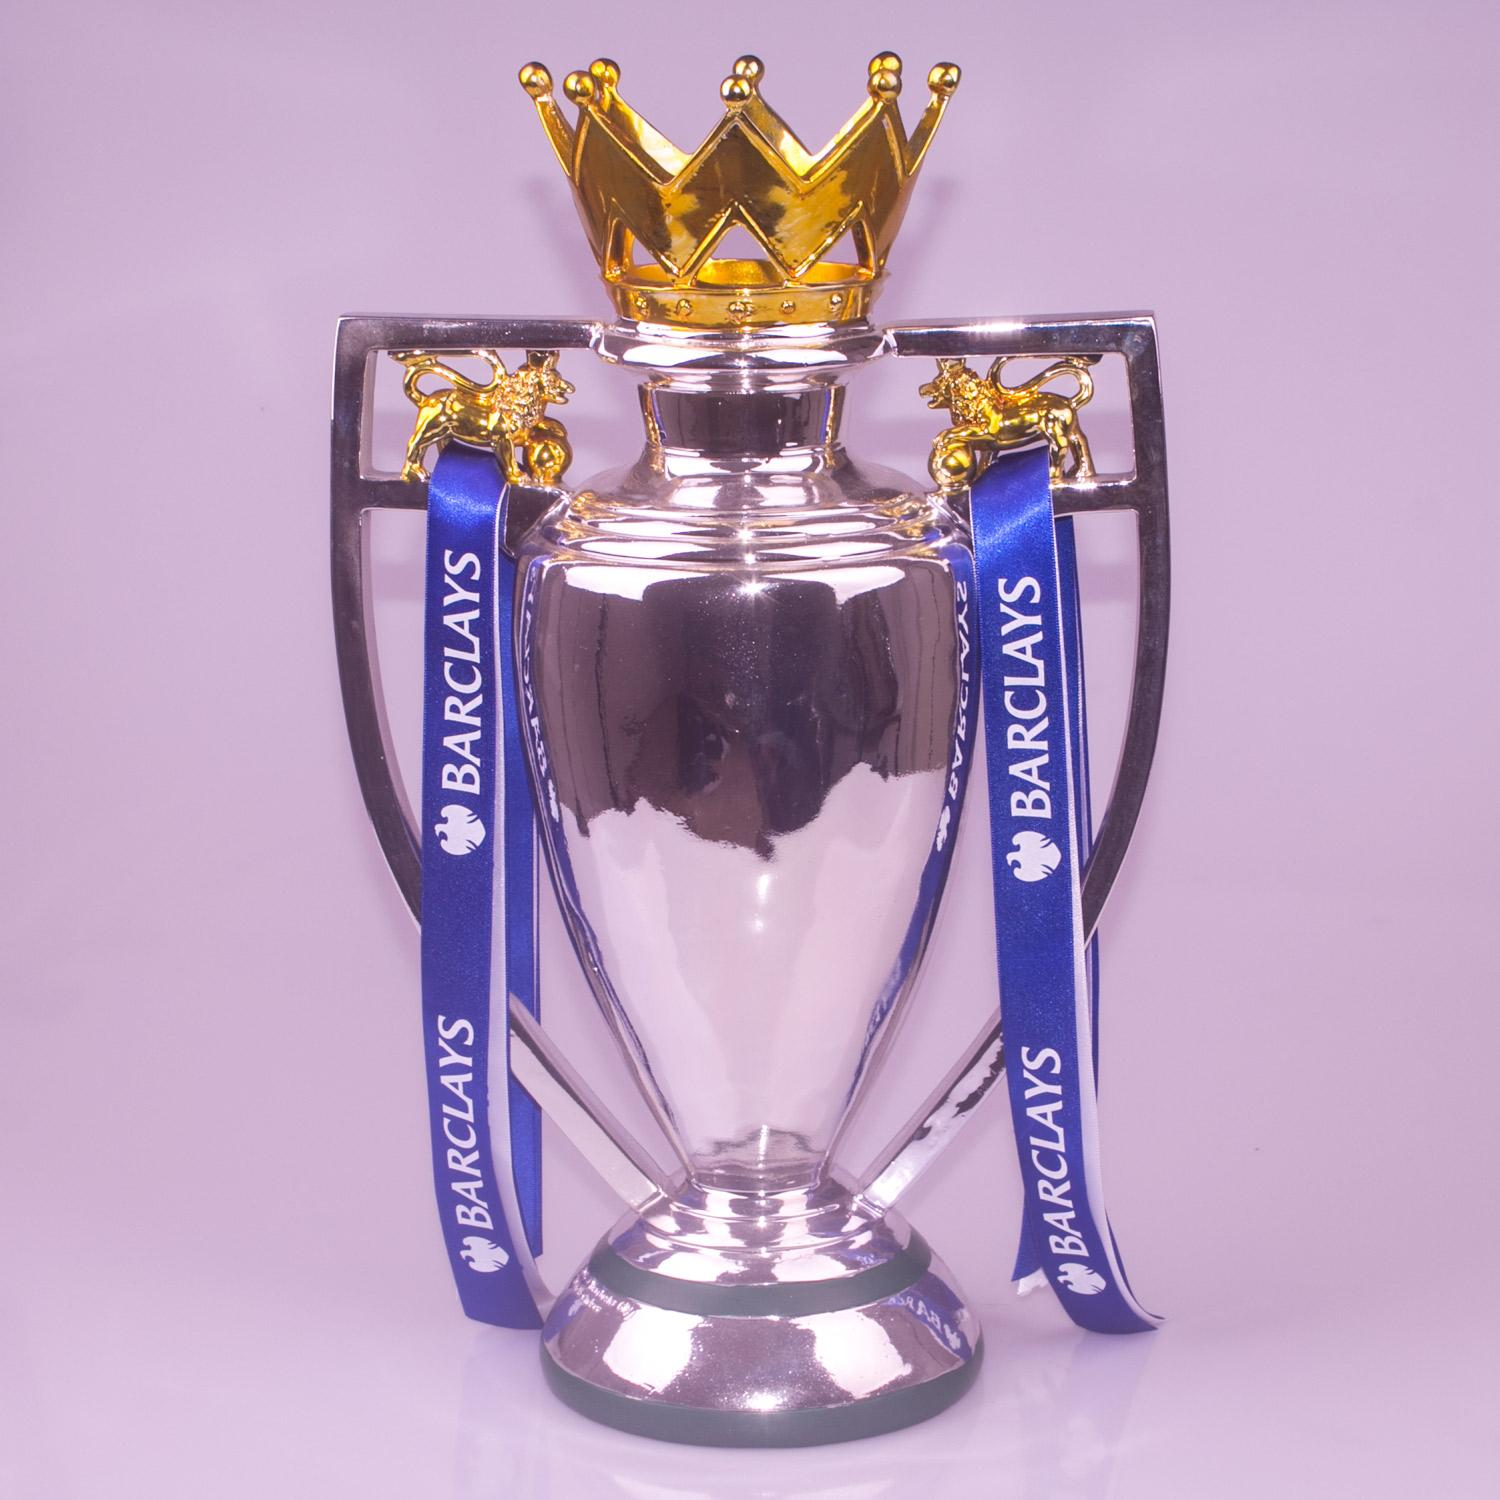 2021 High Quality 30 Cm English Fa Premiership Trophy Premier League Trophy Replica Cup Barclay Trophies And Awards From Linghanmaoyi2 65 23 Dhgate Com